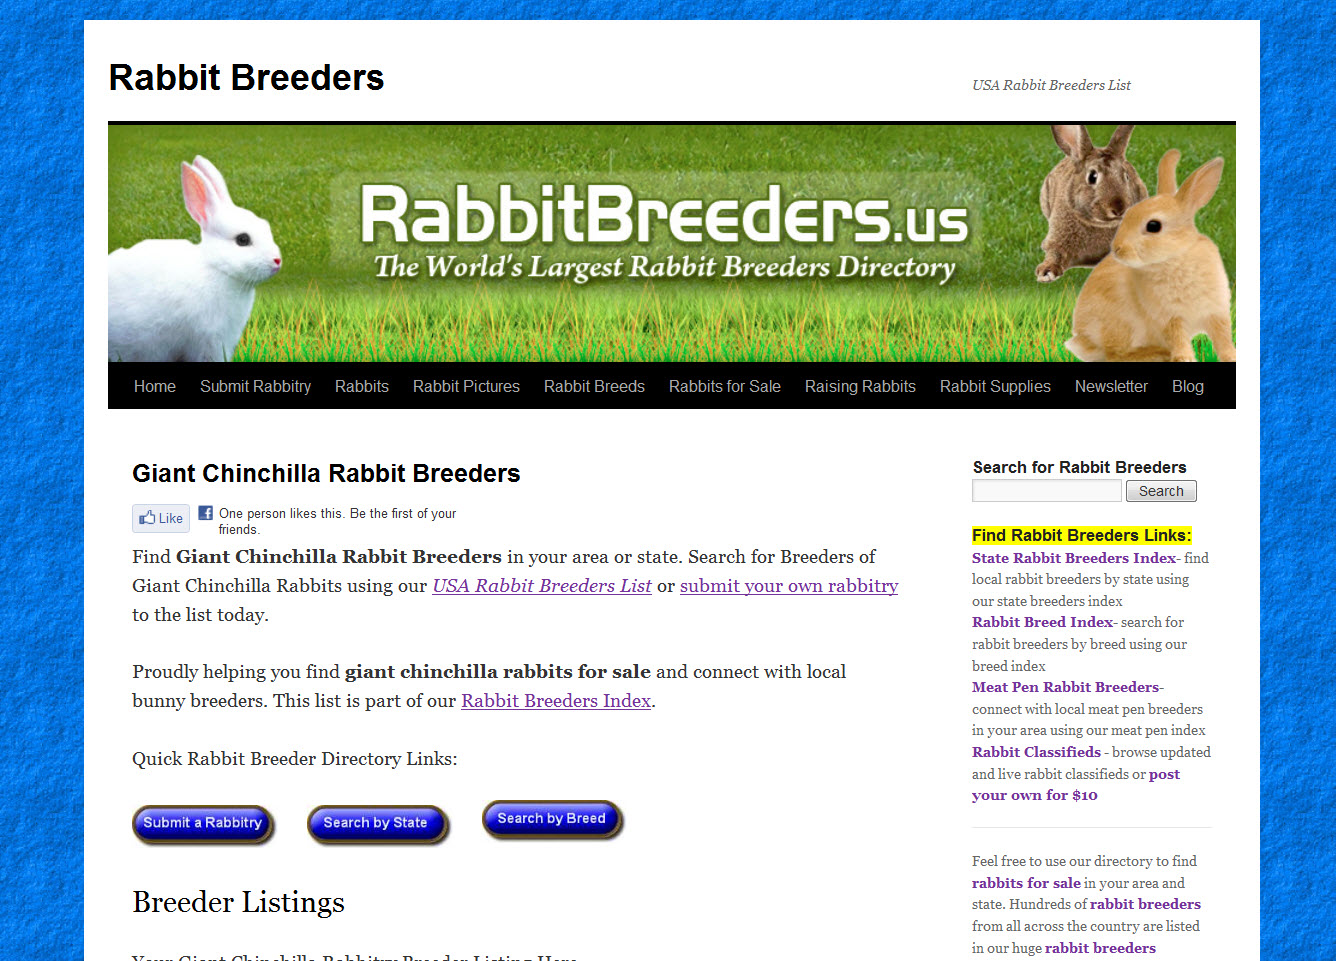 Giant Chinchilla Rabbit Breeders